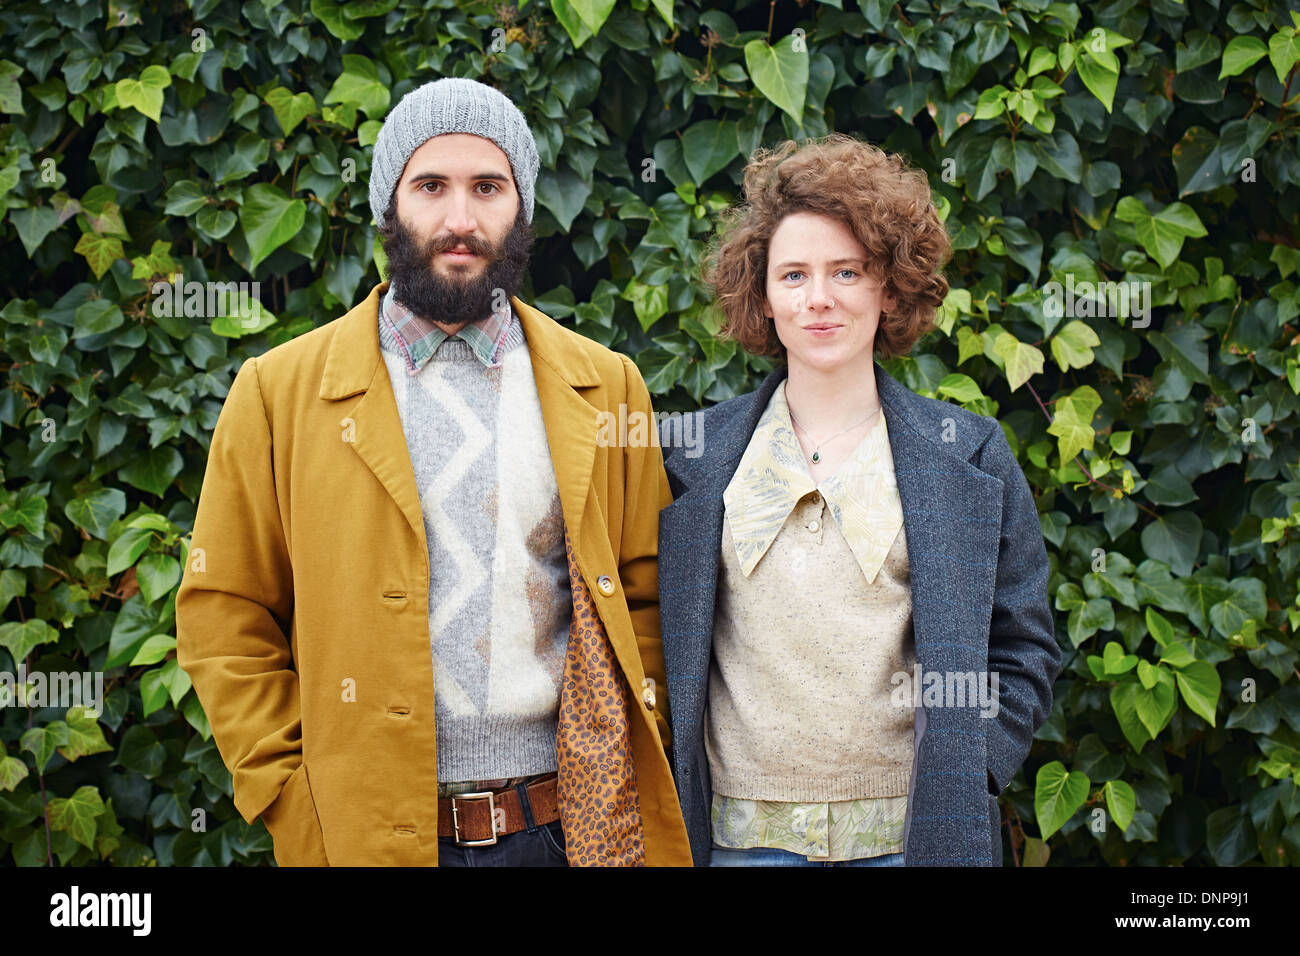 Smiling hipster student couple in vintage clothes - Stock Image